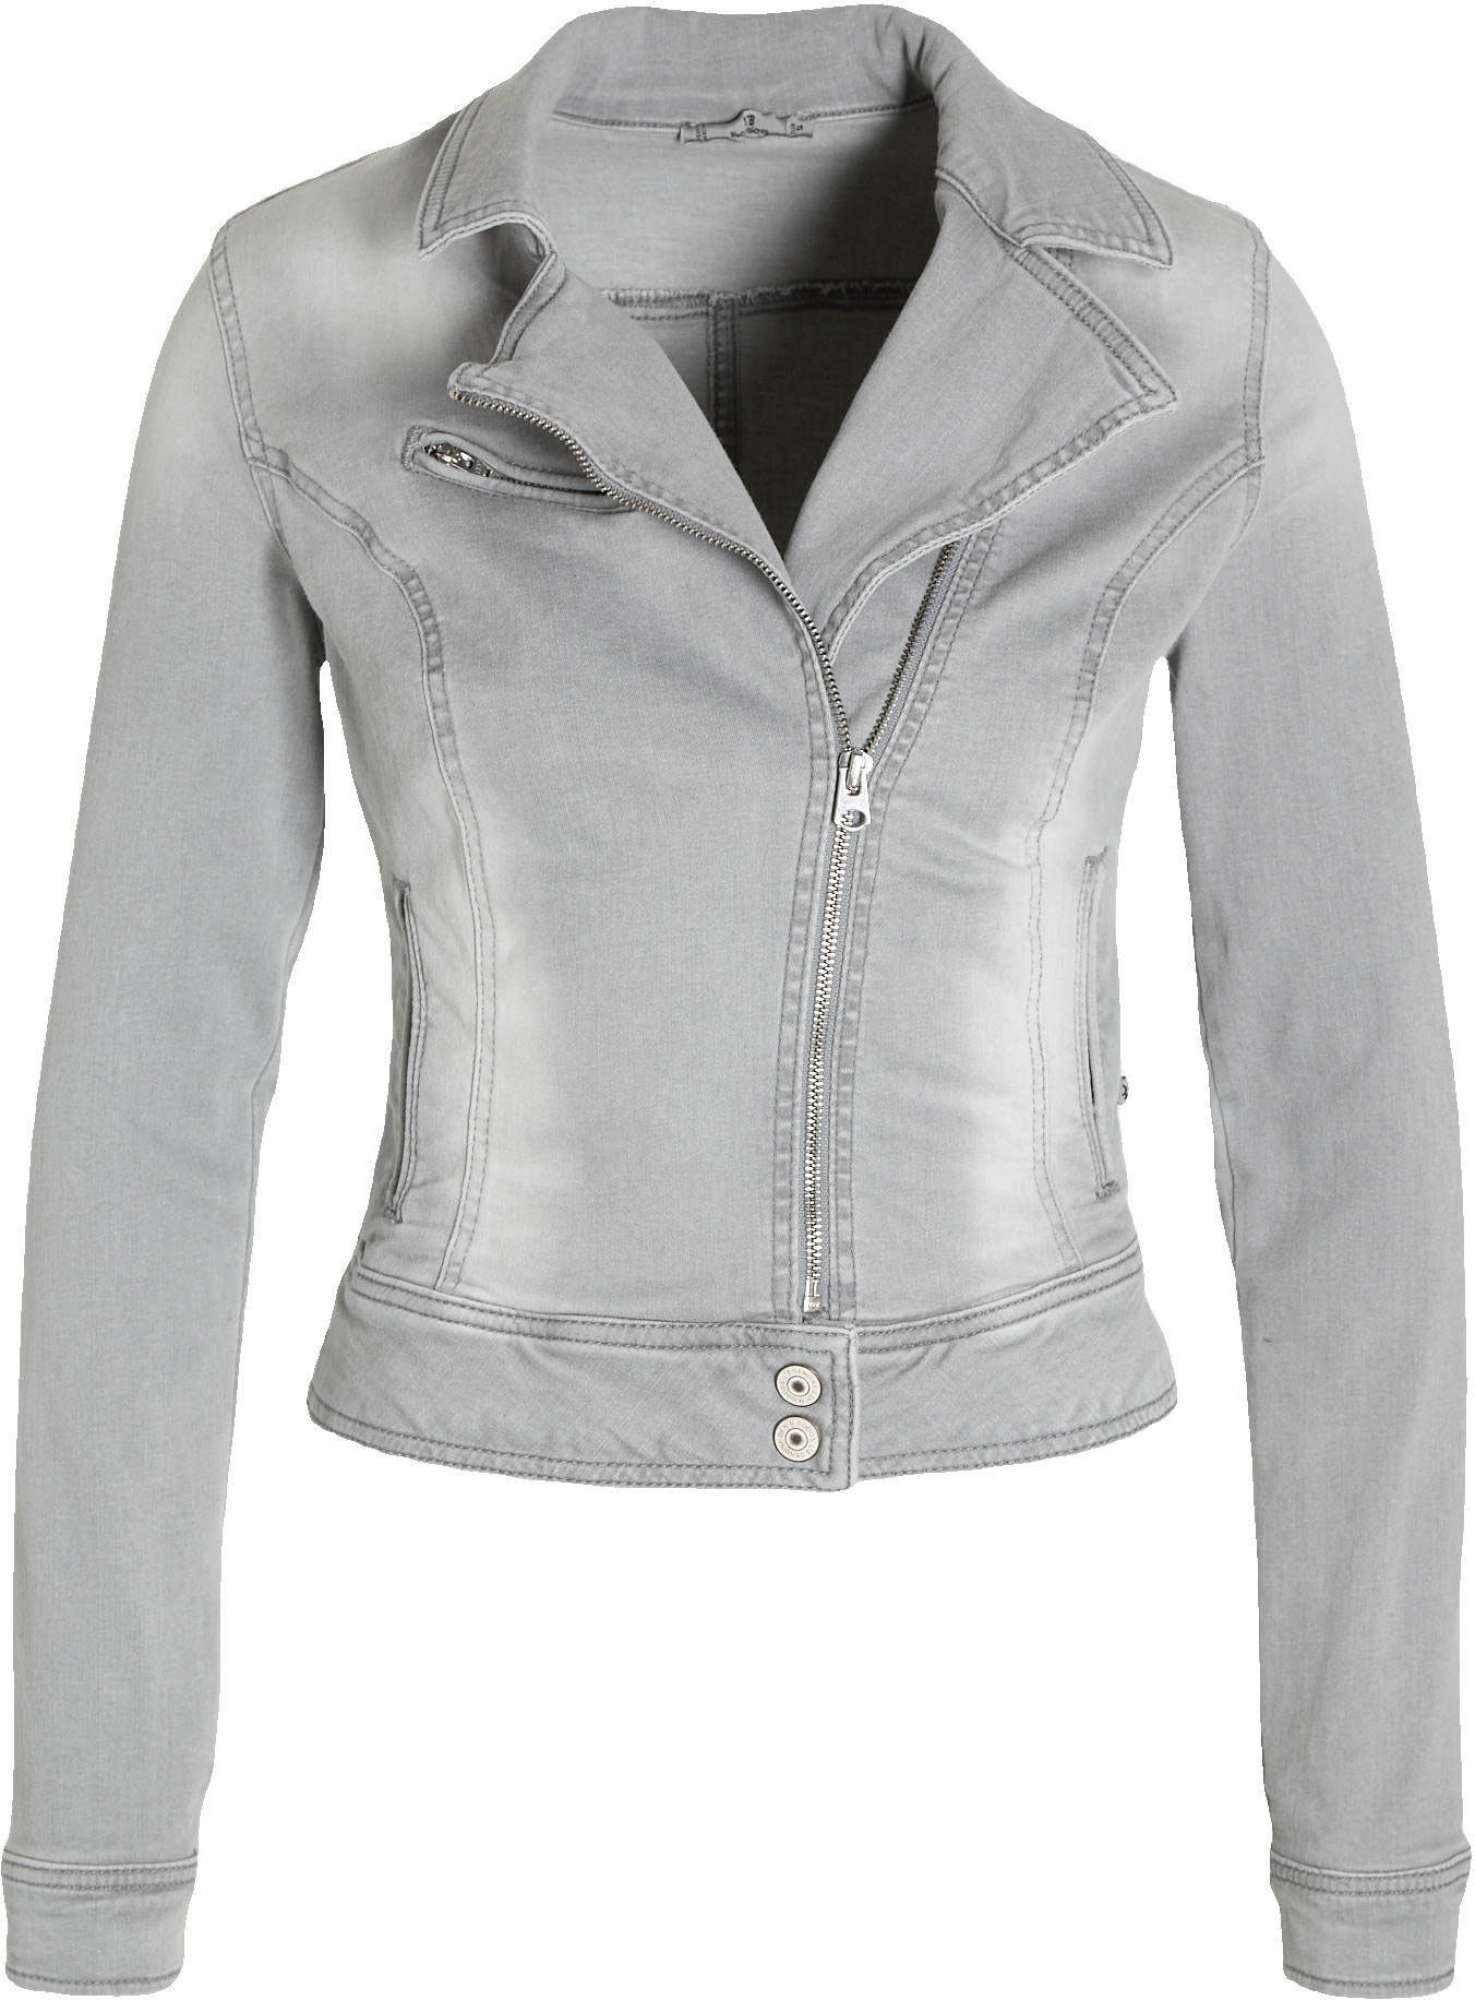 Ellen freya undamaged grey wash